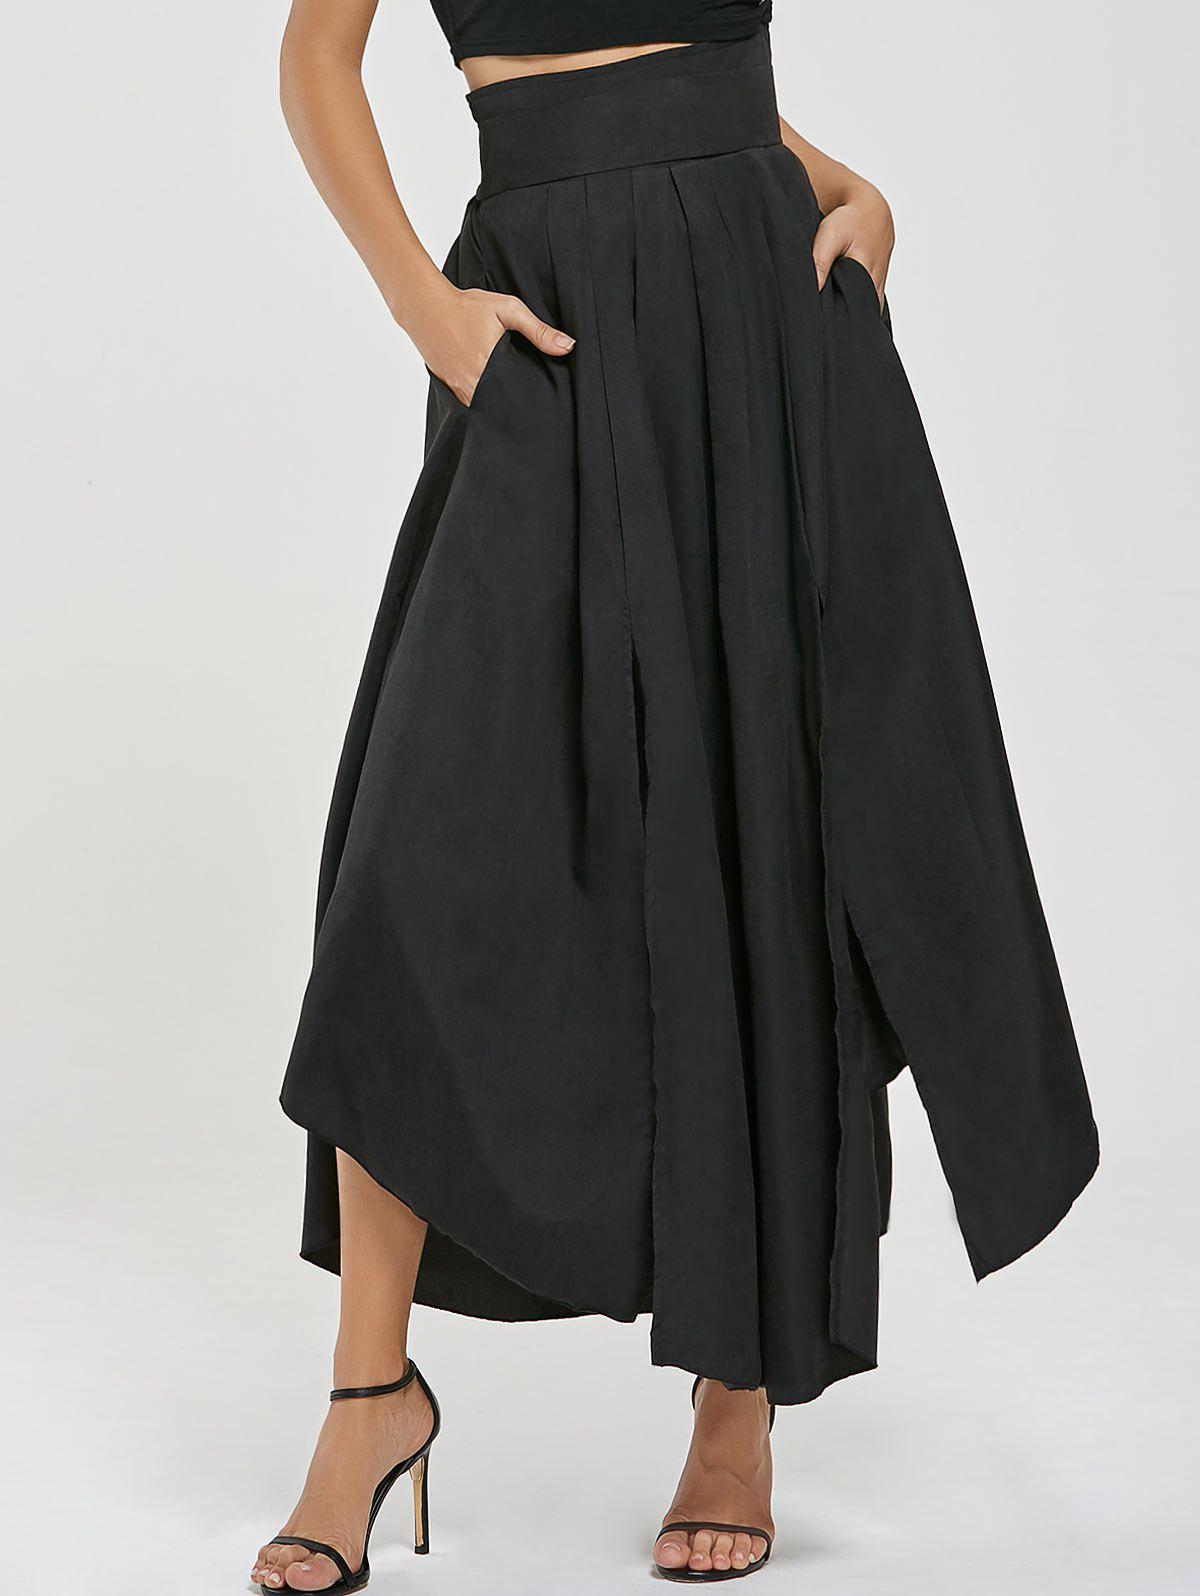 Chic High Waisted Slit Maxi Skirt